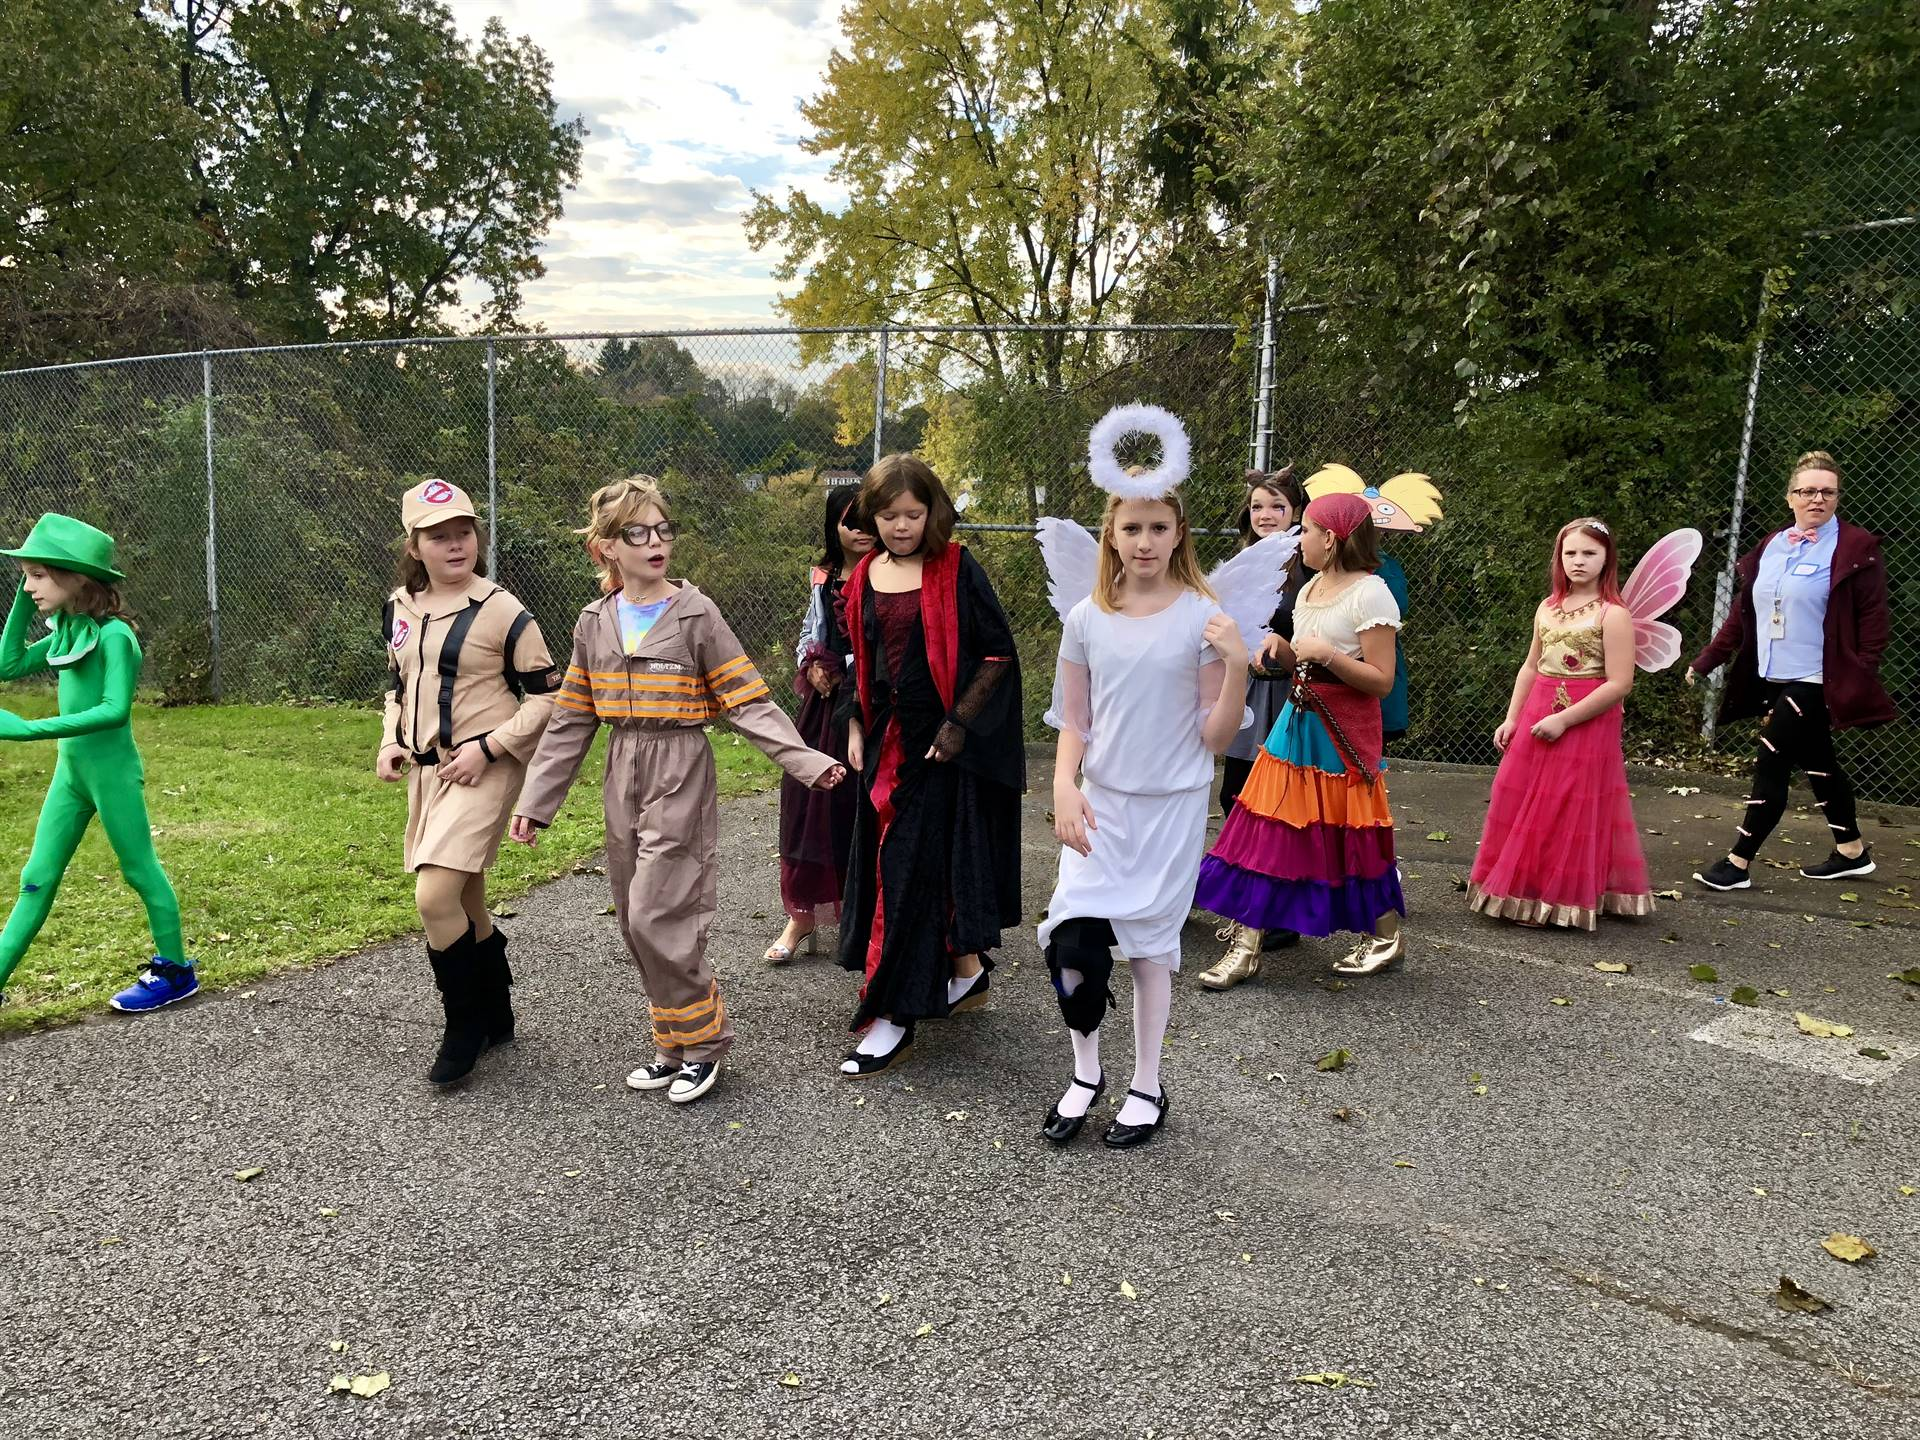 Students walking in costumes.